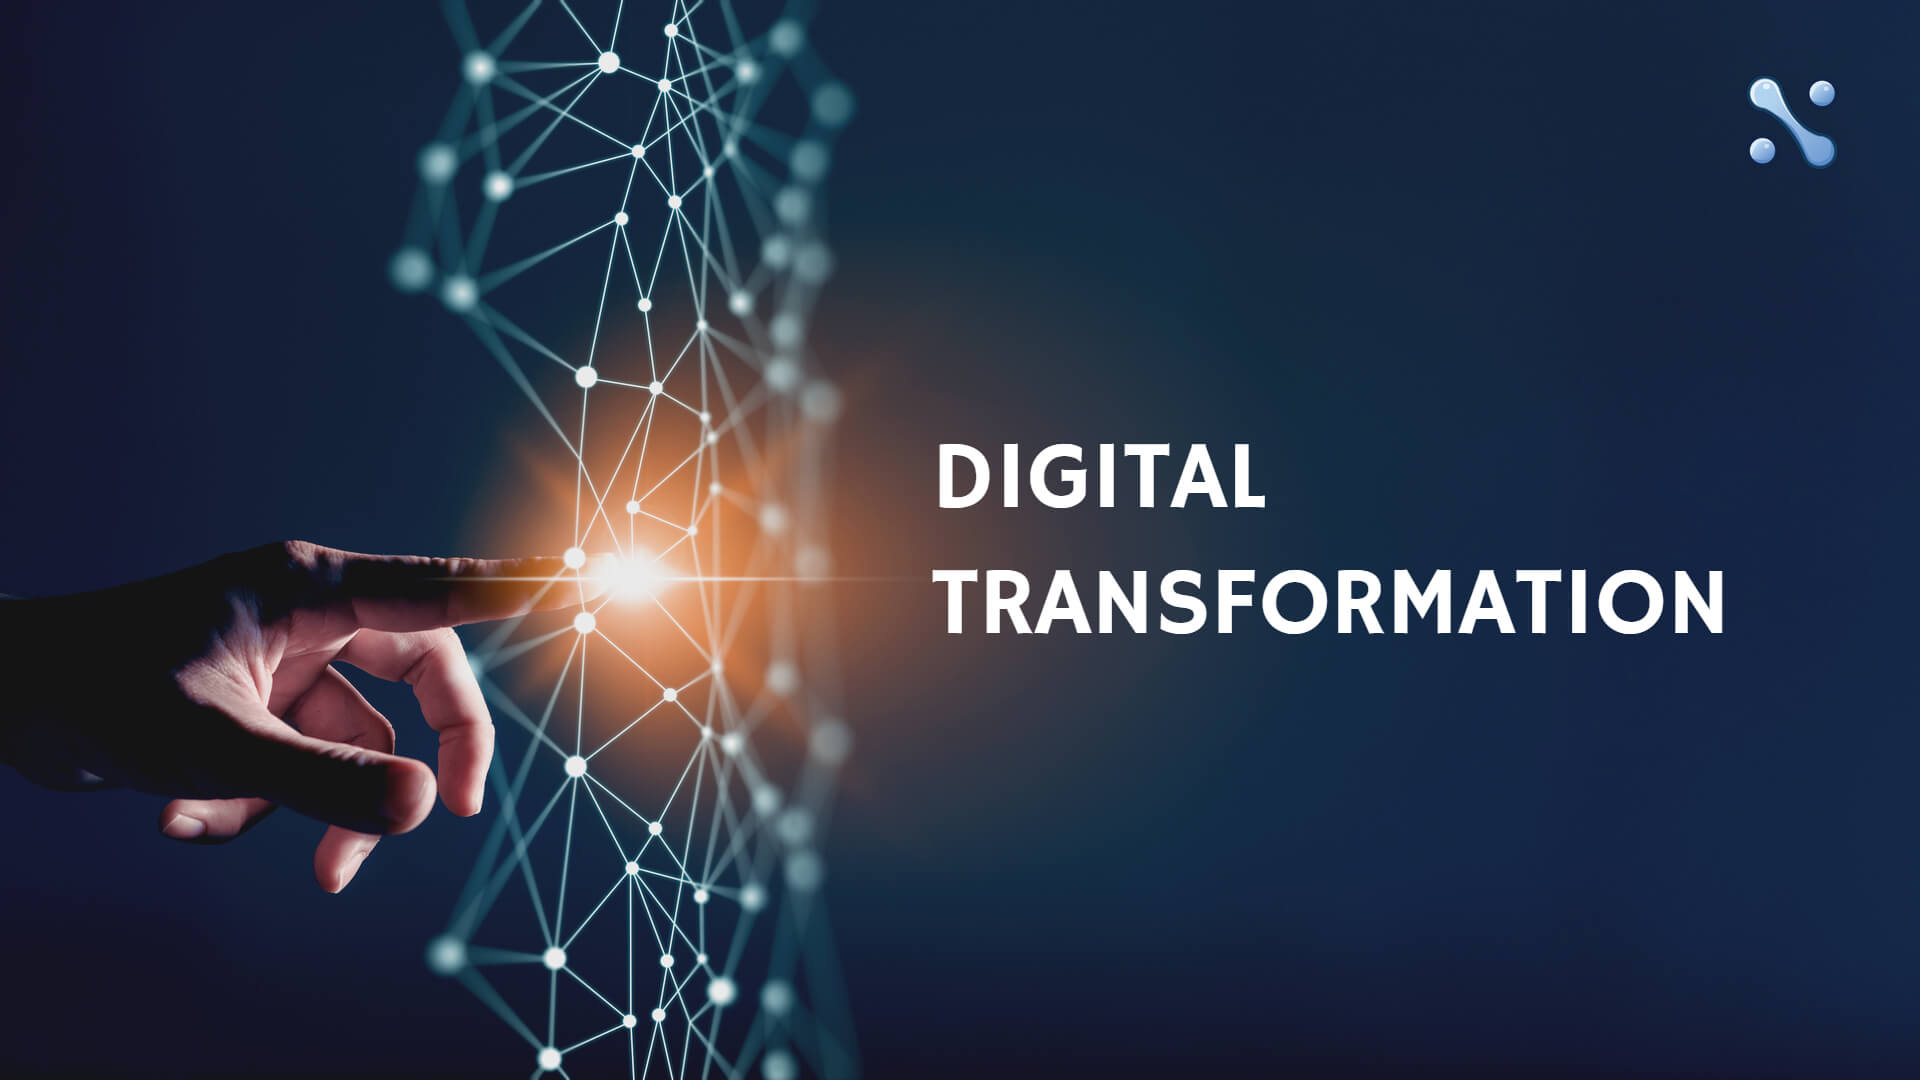 Digital Transformation - The New Era for Business Simplification